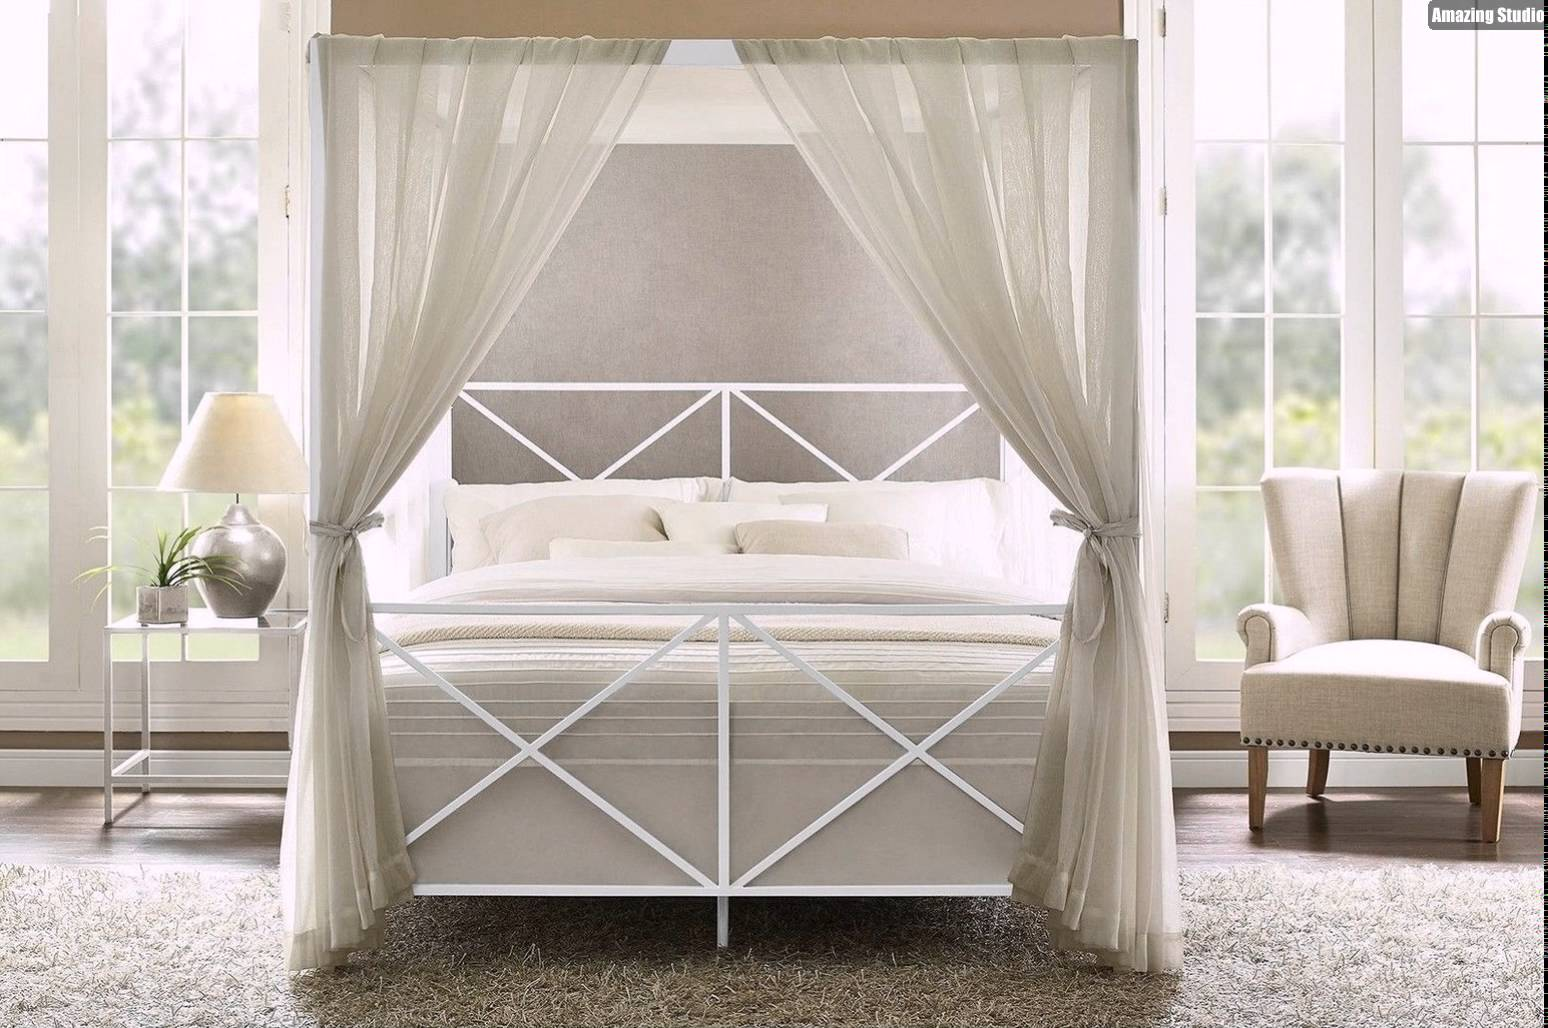 Elegant DIY Canopy Bed for Gorgeous Bedroom with Grey Sheer Curtain beside Cozy Wingchair